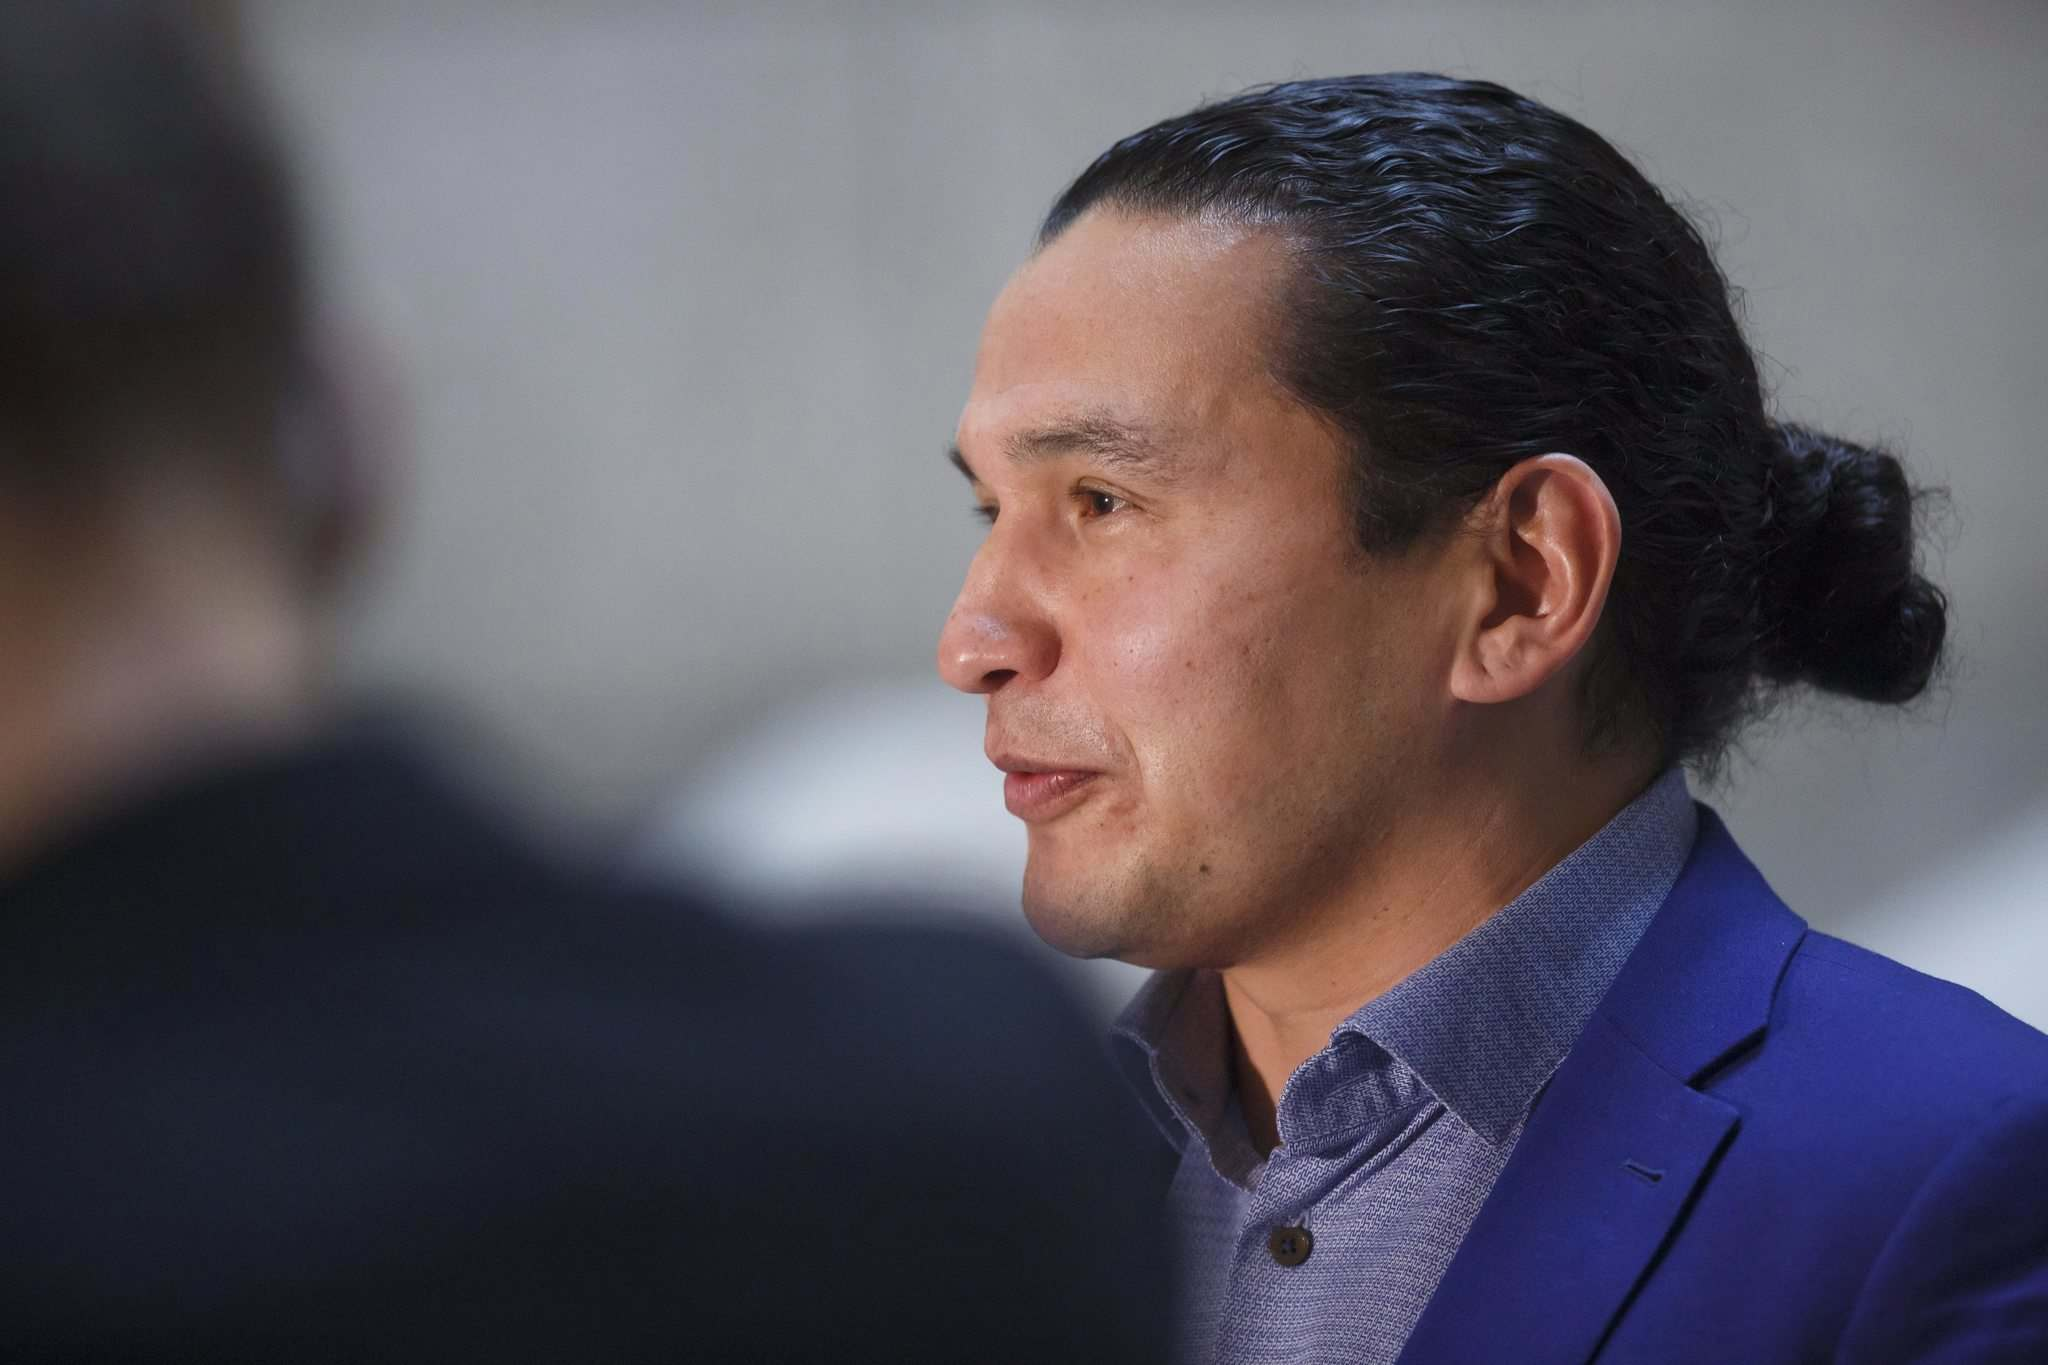 """""""If (Teitsma) showed such poor judgment over the holidays, I've got to think that Mr. Pallister should remove him from that committee that has such an important role,"""" NDP Leader Wab Kinew said Wednesday."""